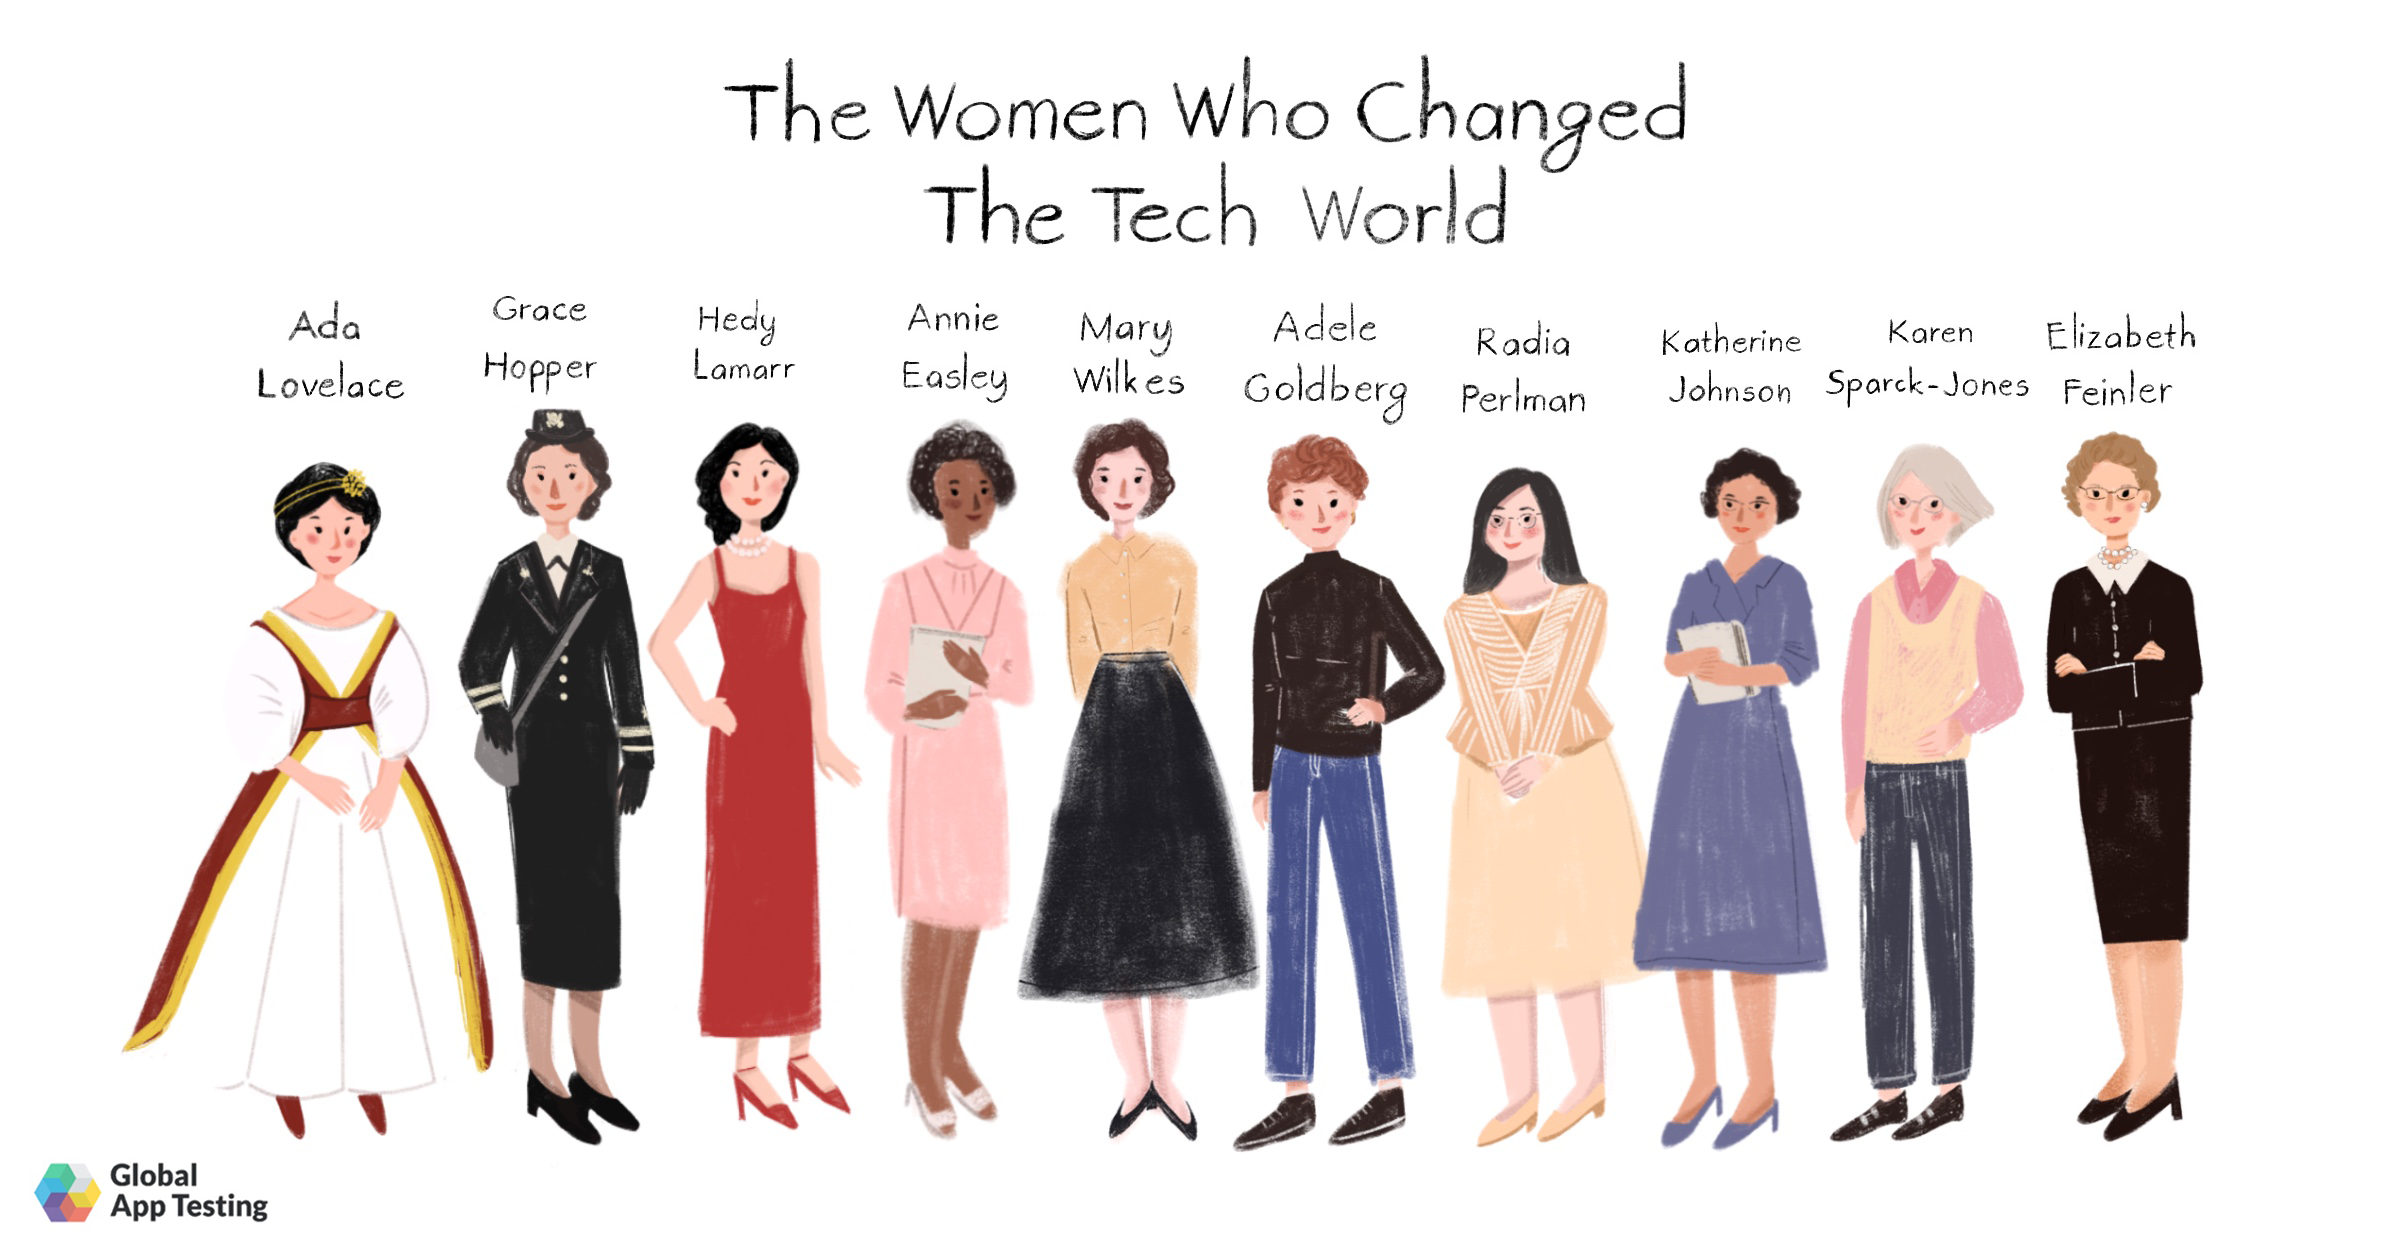 The Women Who Changed The Tech World